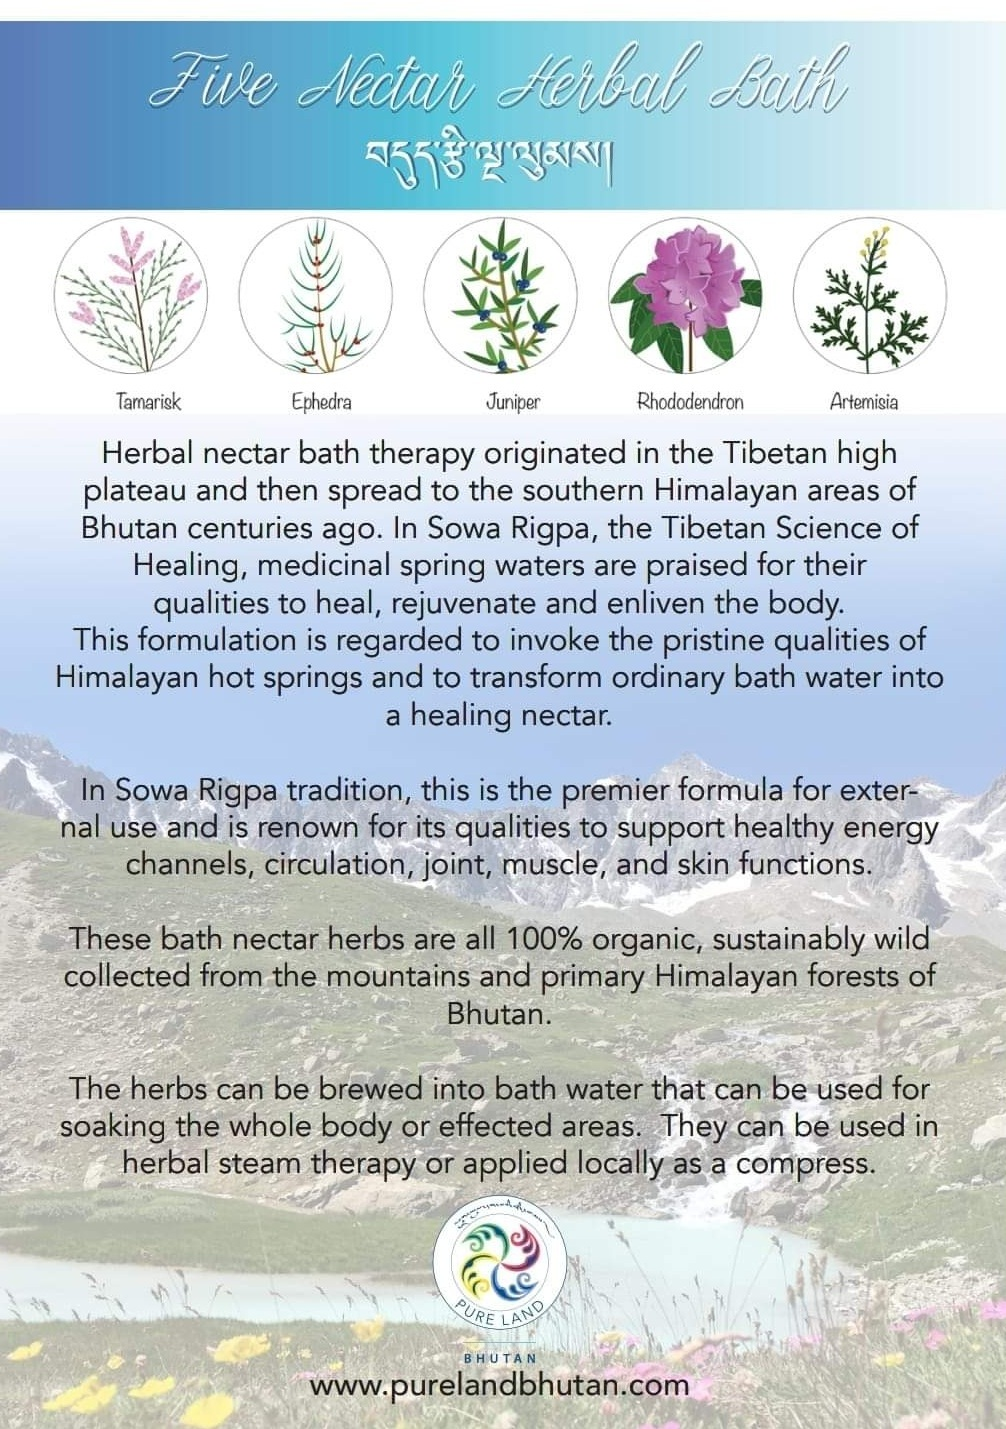 - Look out for our first productFive Nectar Herbal Bath!